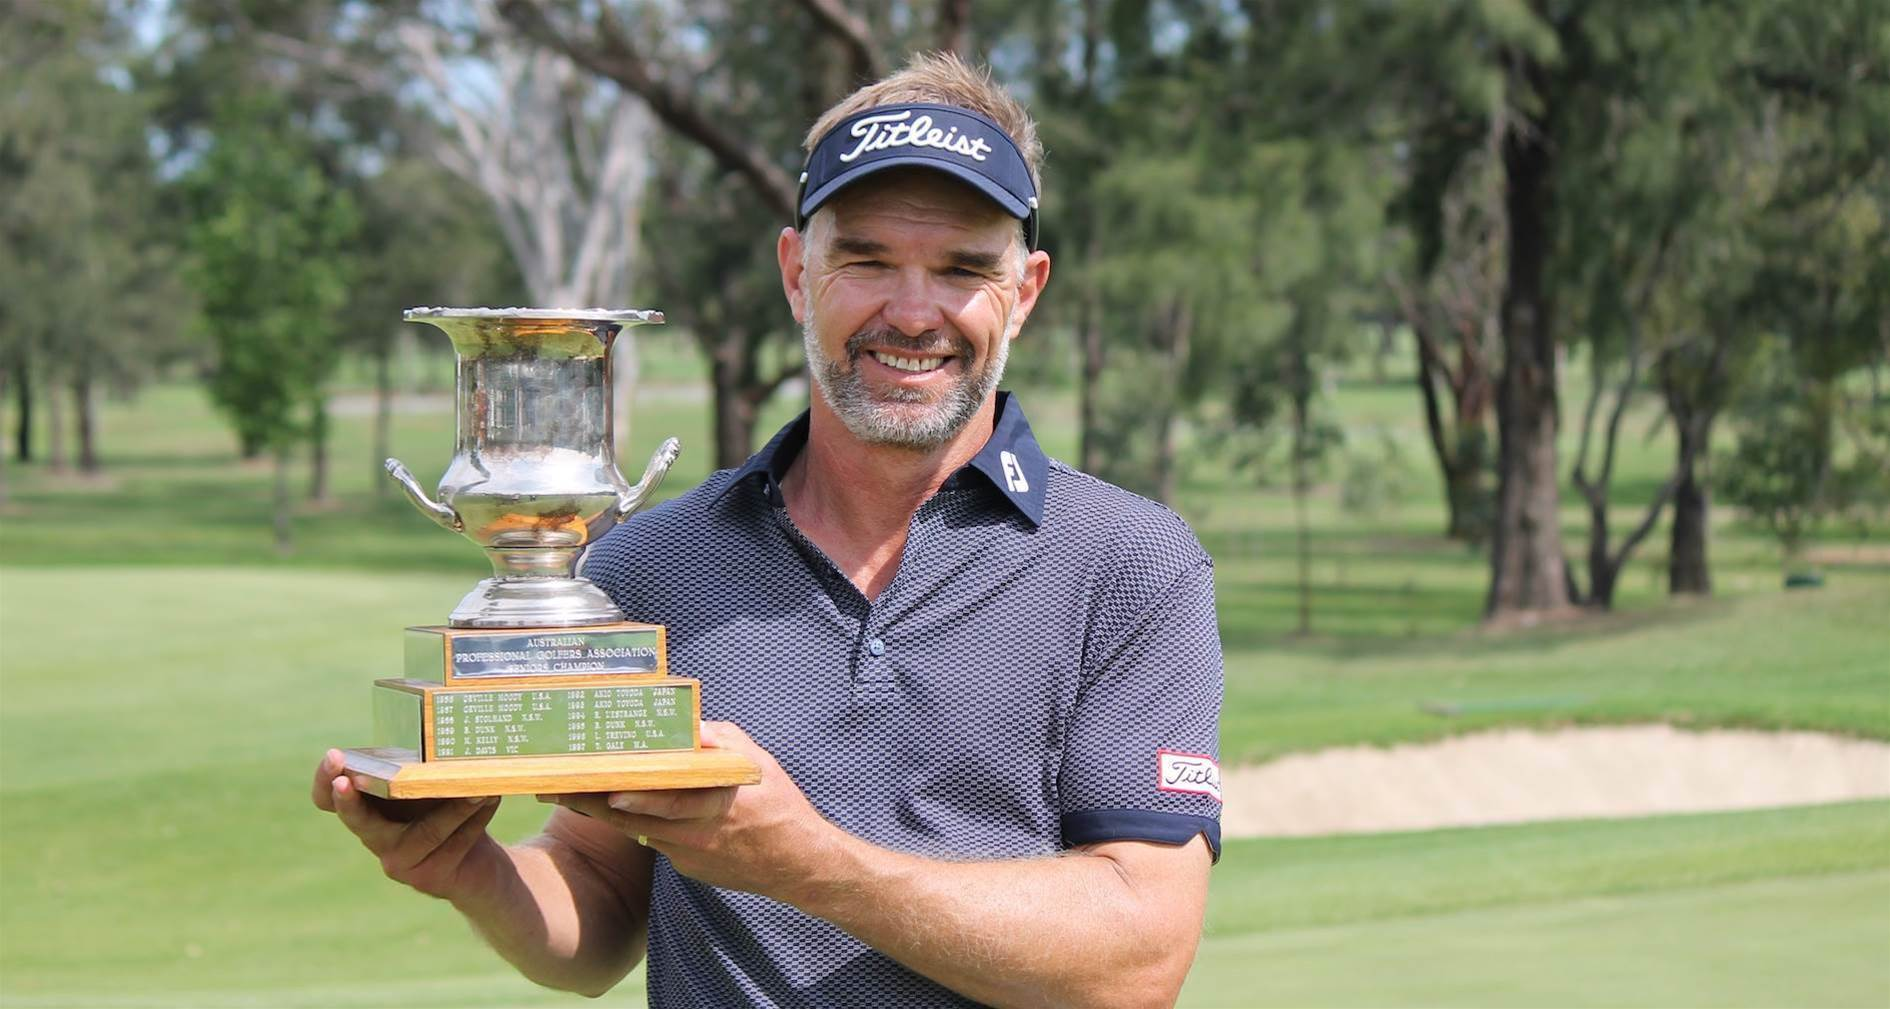 Michael Long goes back-to-back